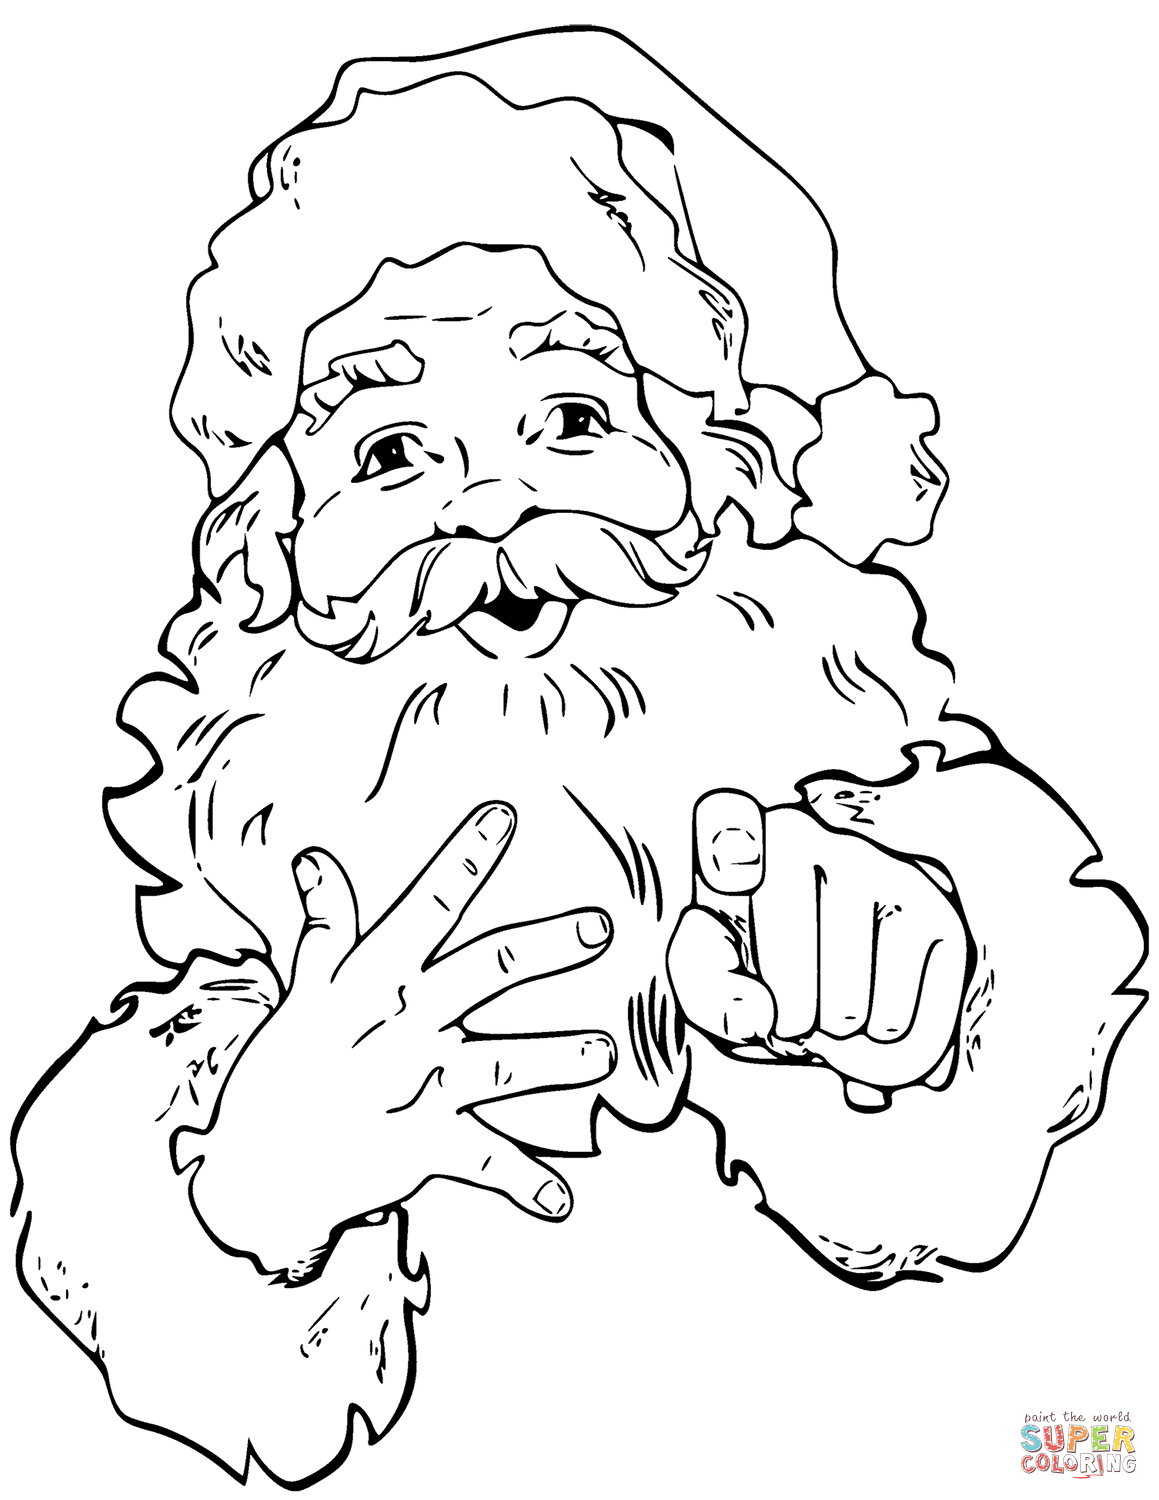 Santa And Rudolph Coloring Pages Santa Claus Coloring Pages Free Coloring Pages